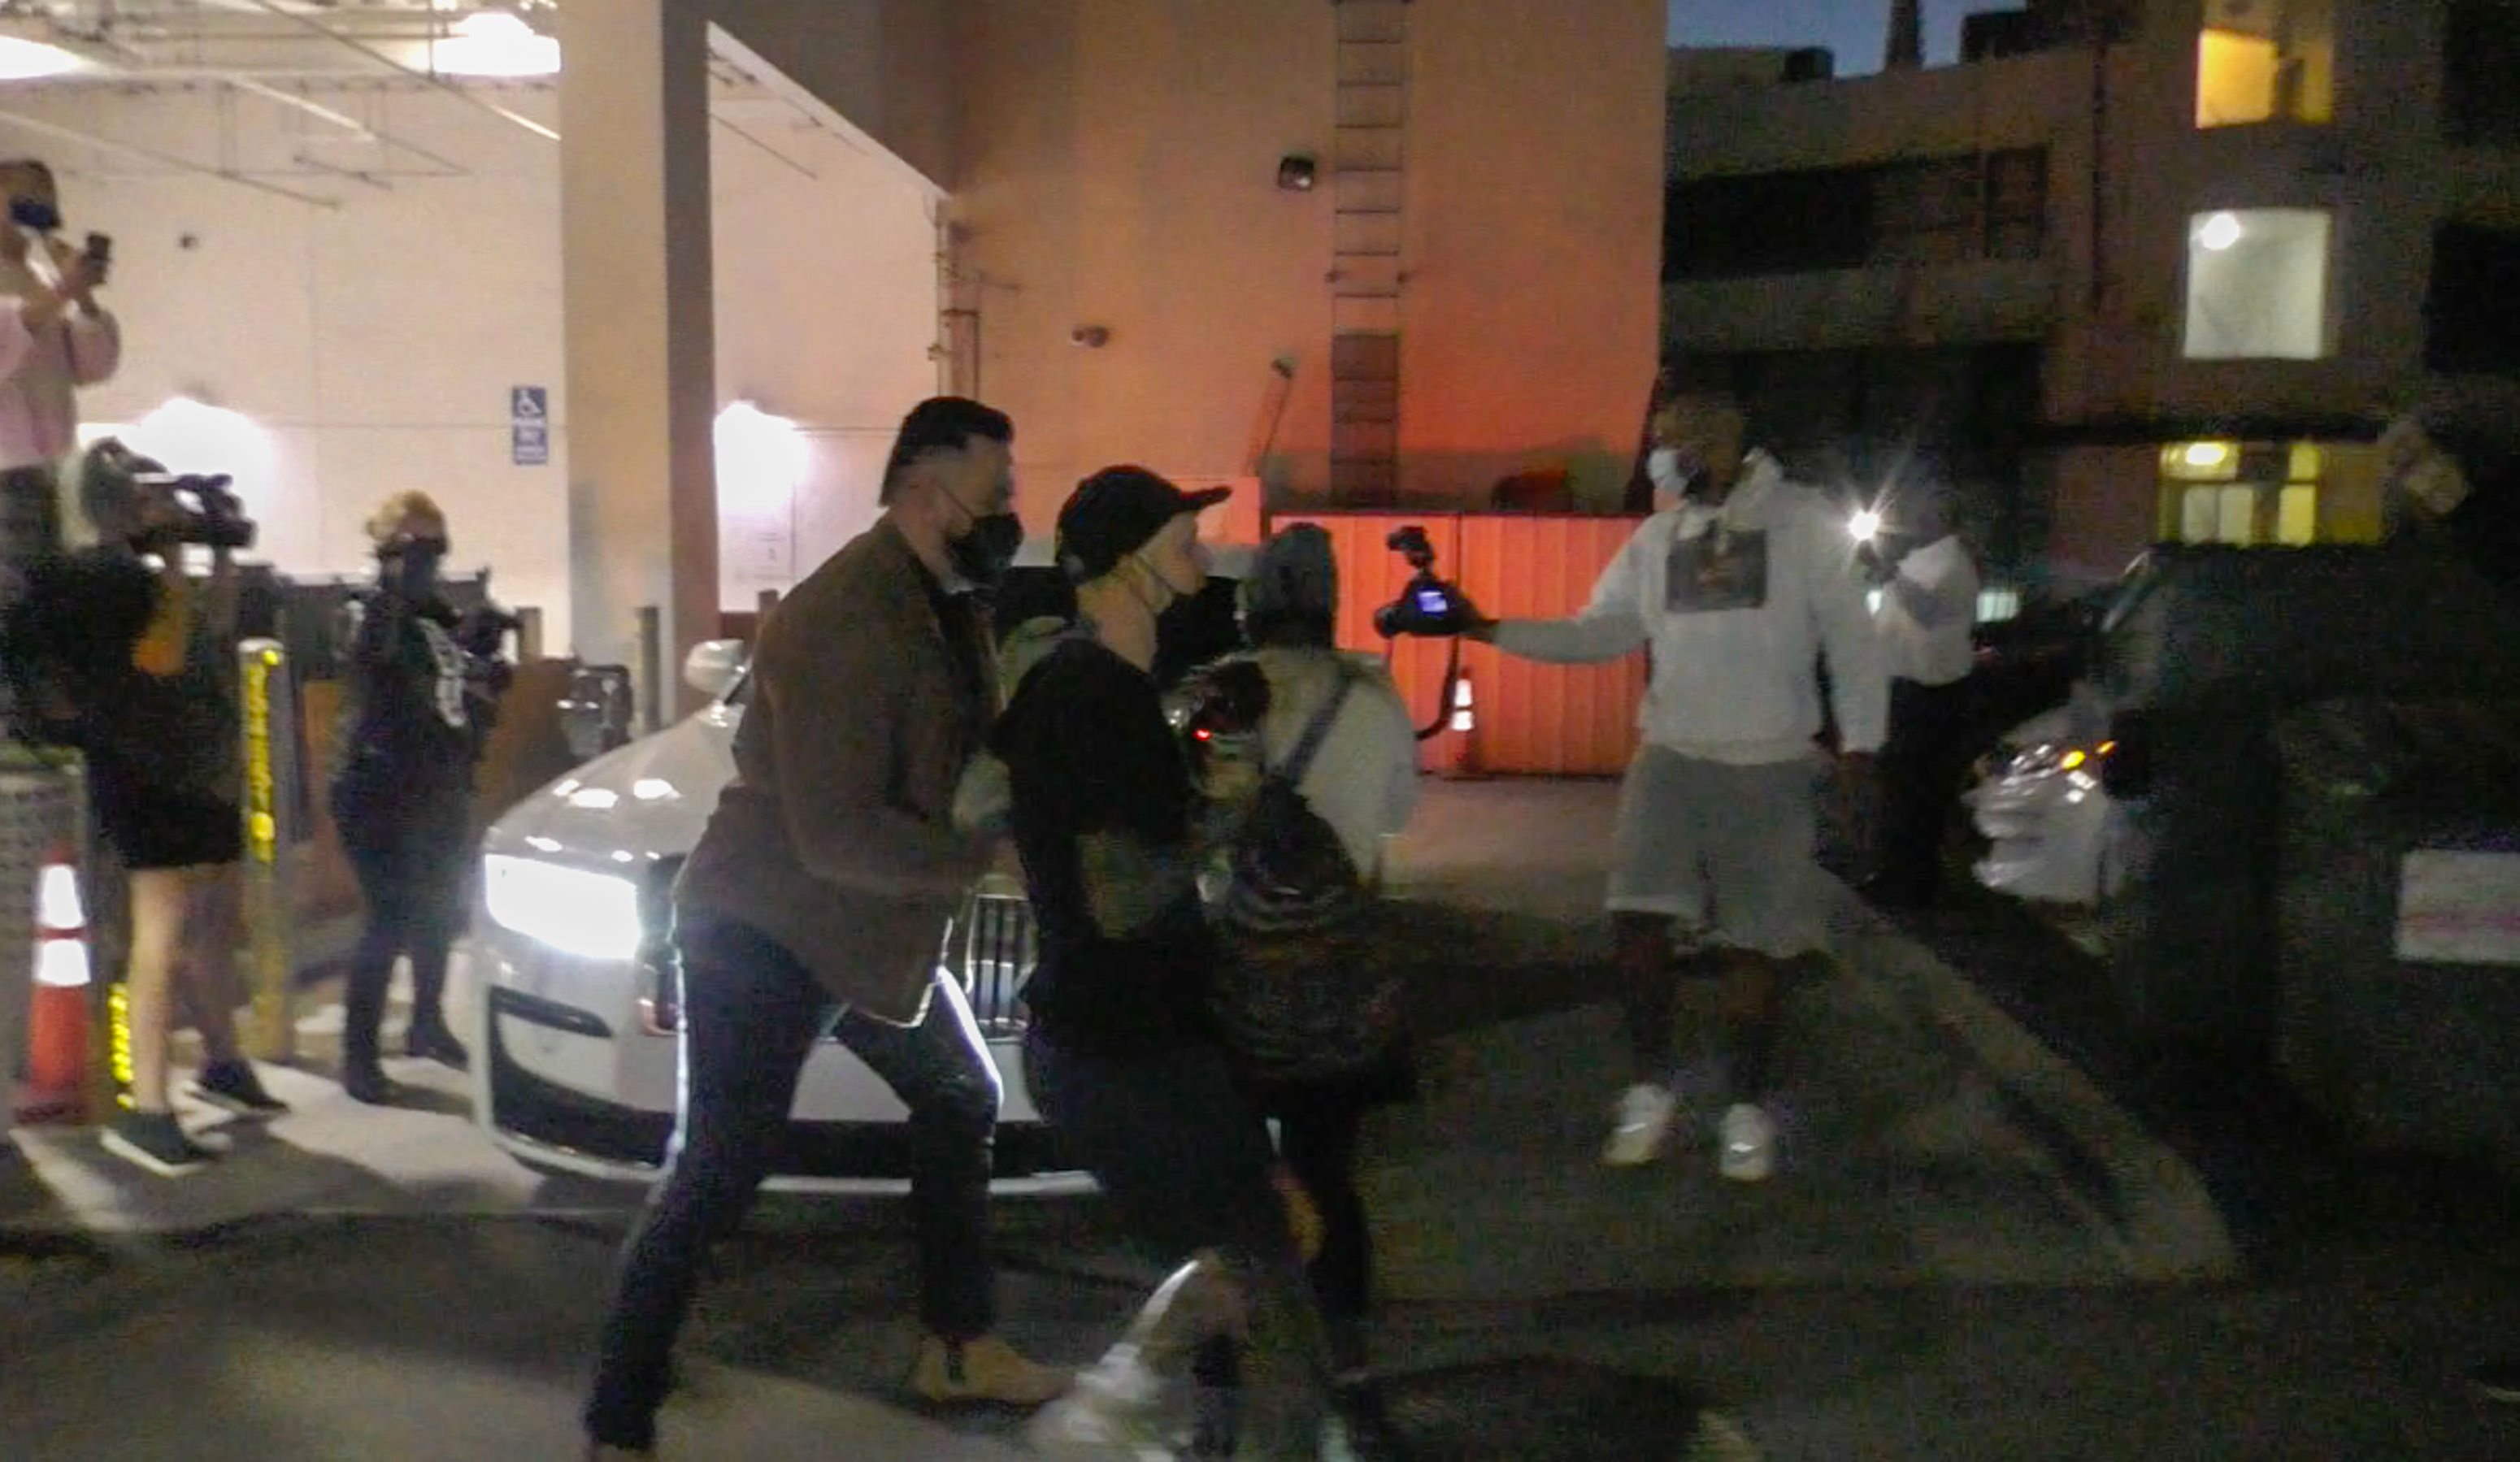 Kylie-Jenner-Was-Stopped-And-Called-A-Monster-By-The-Crowd-2